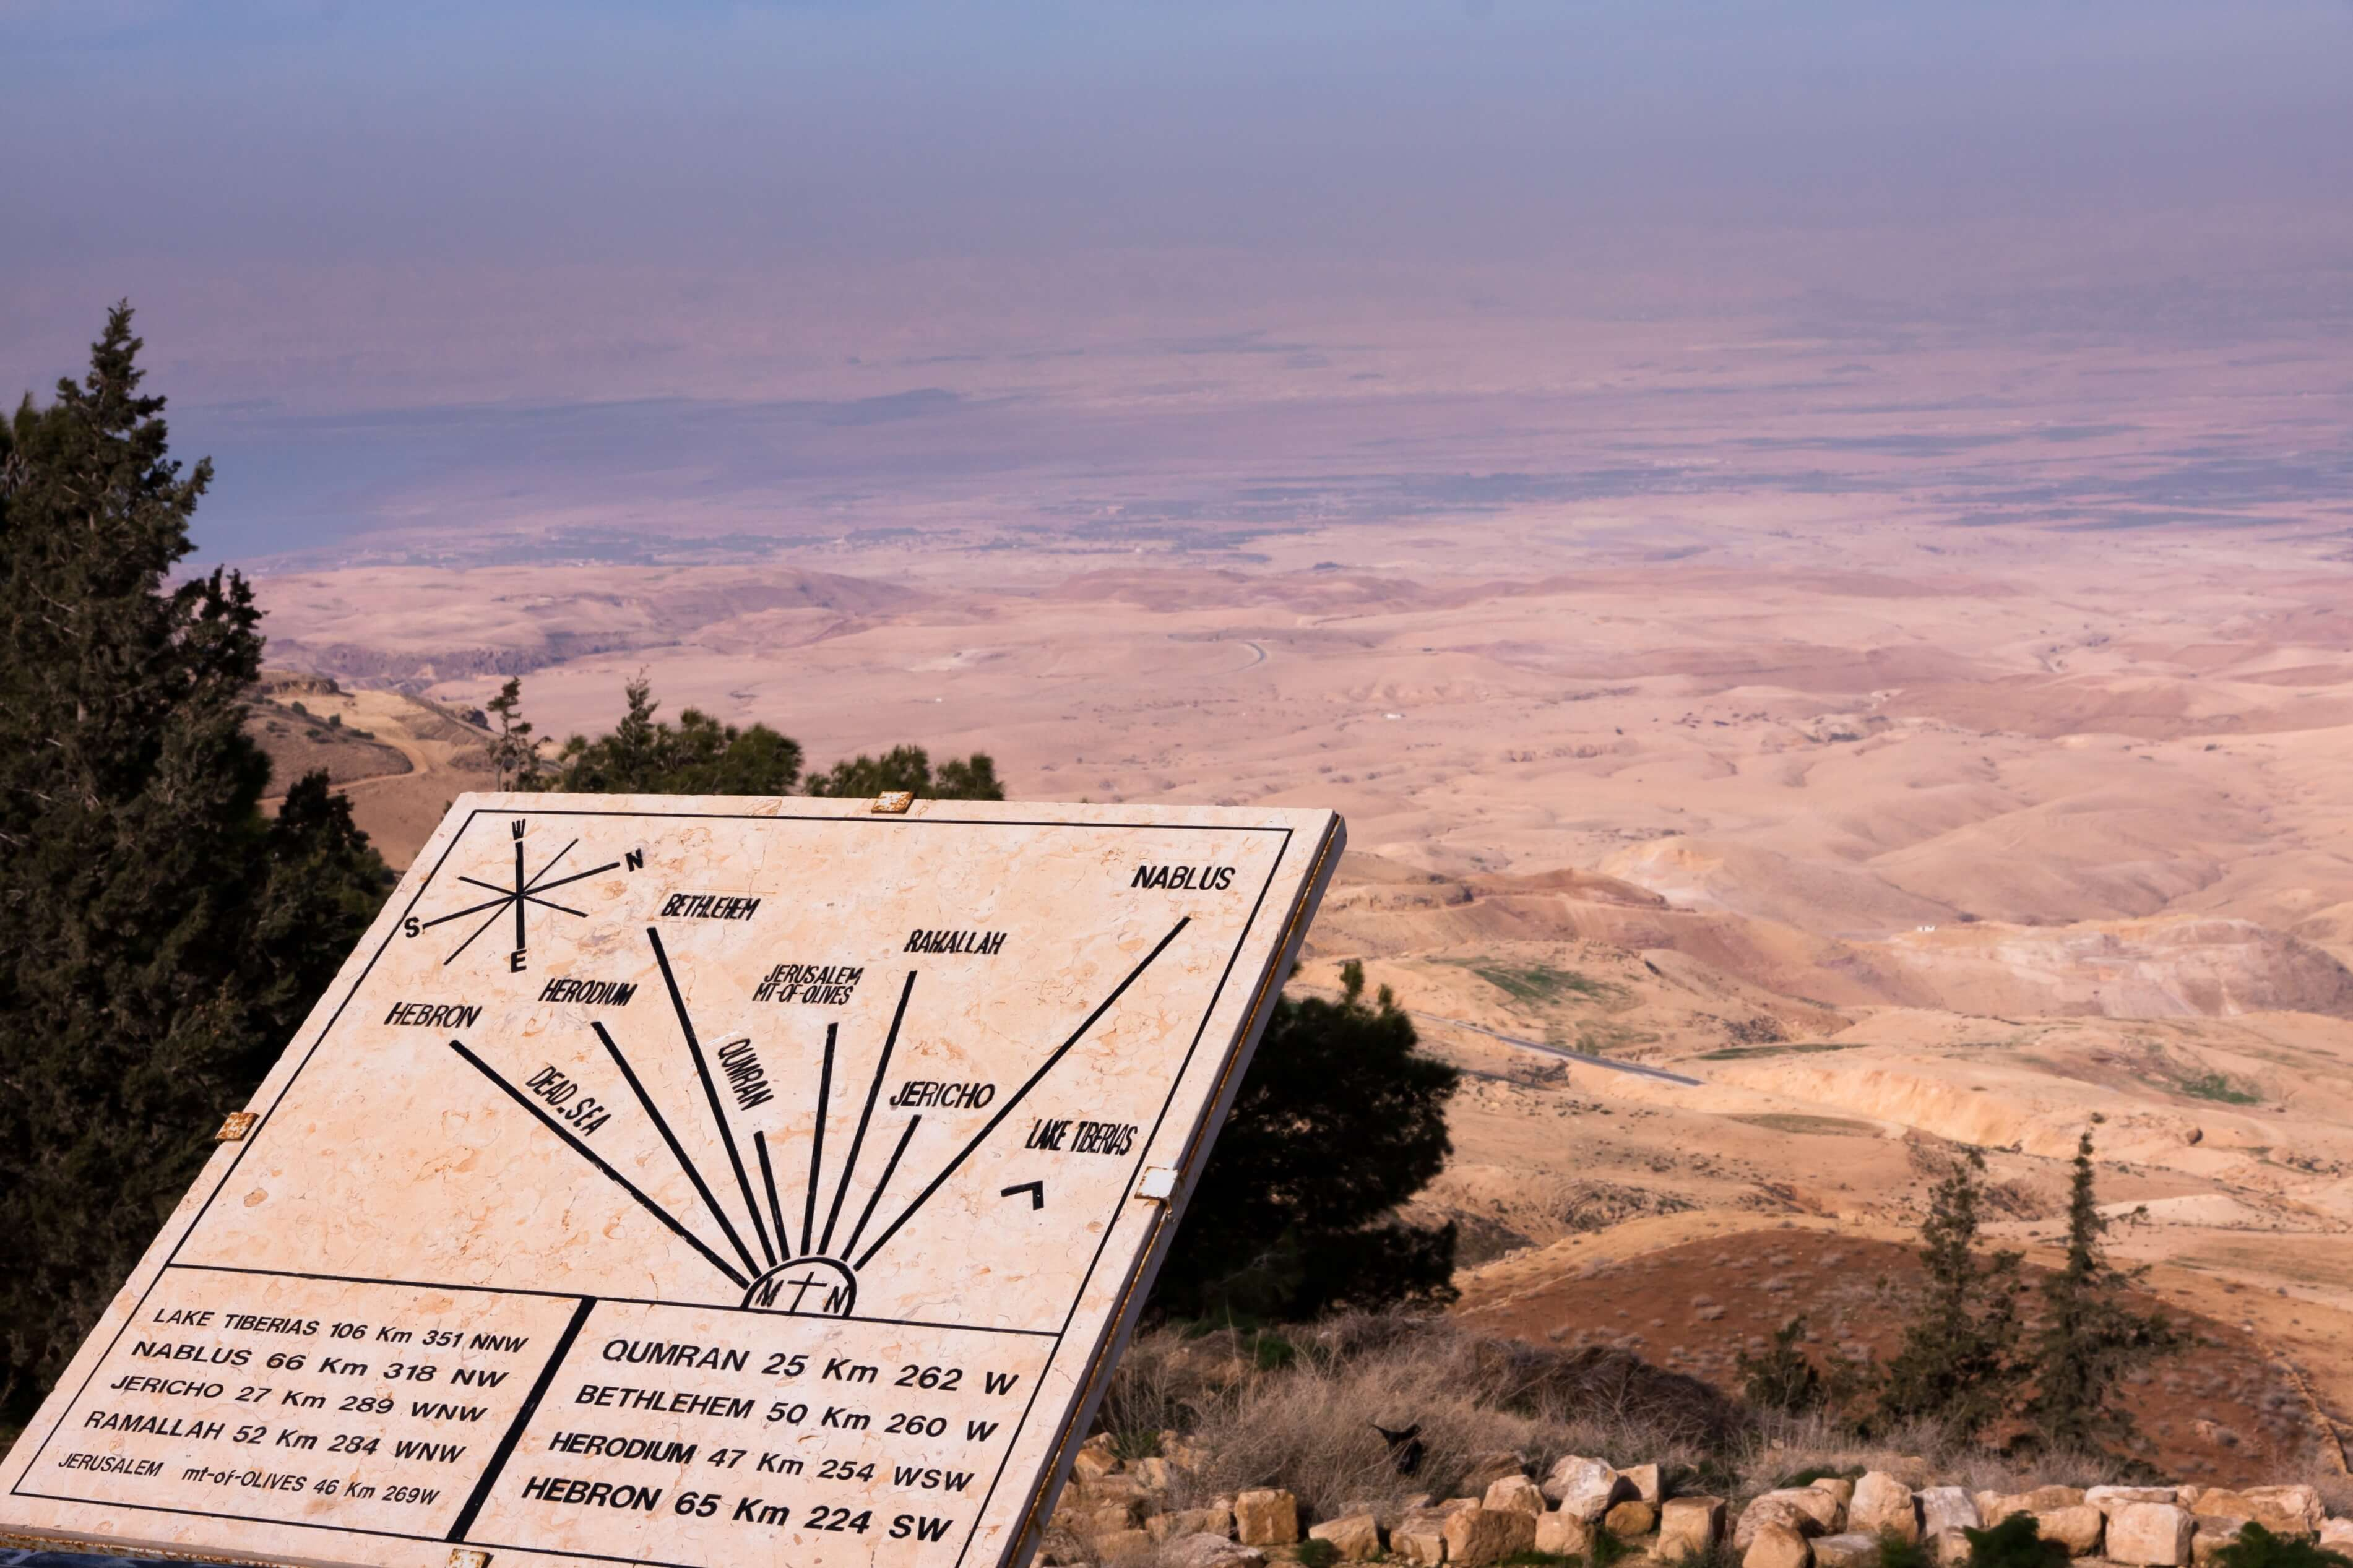 Biblical Sites in Jordan